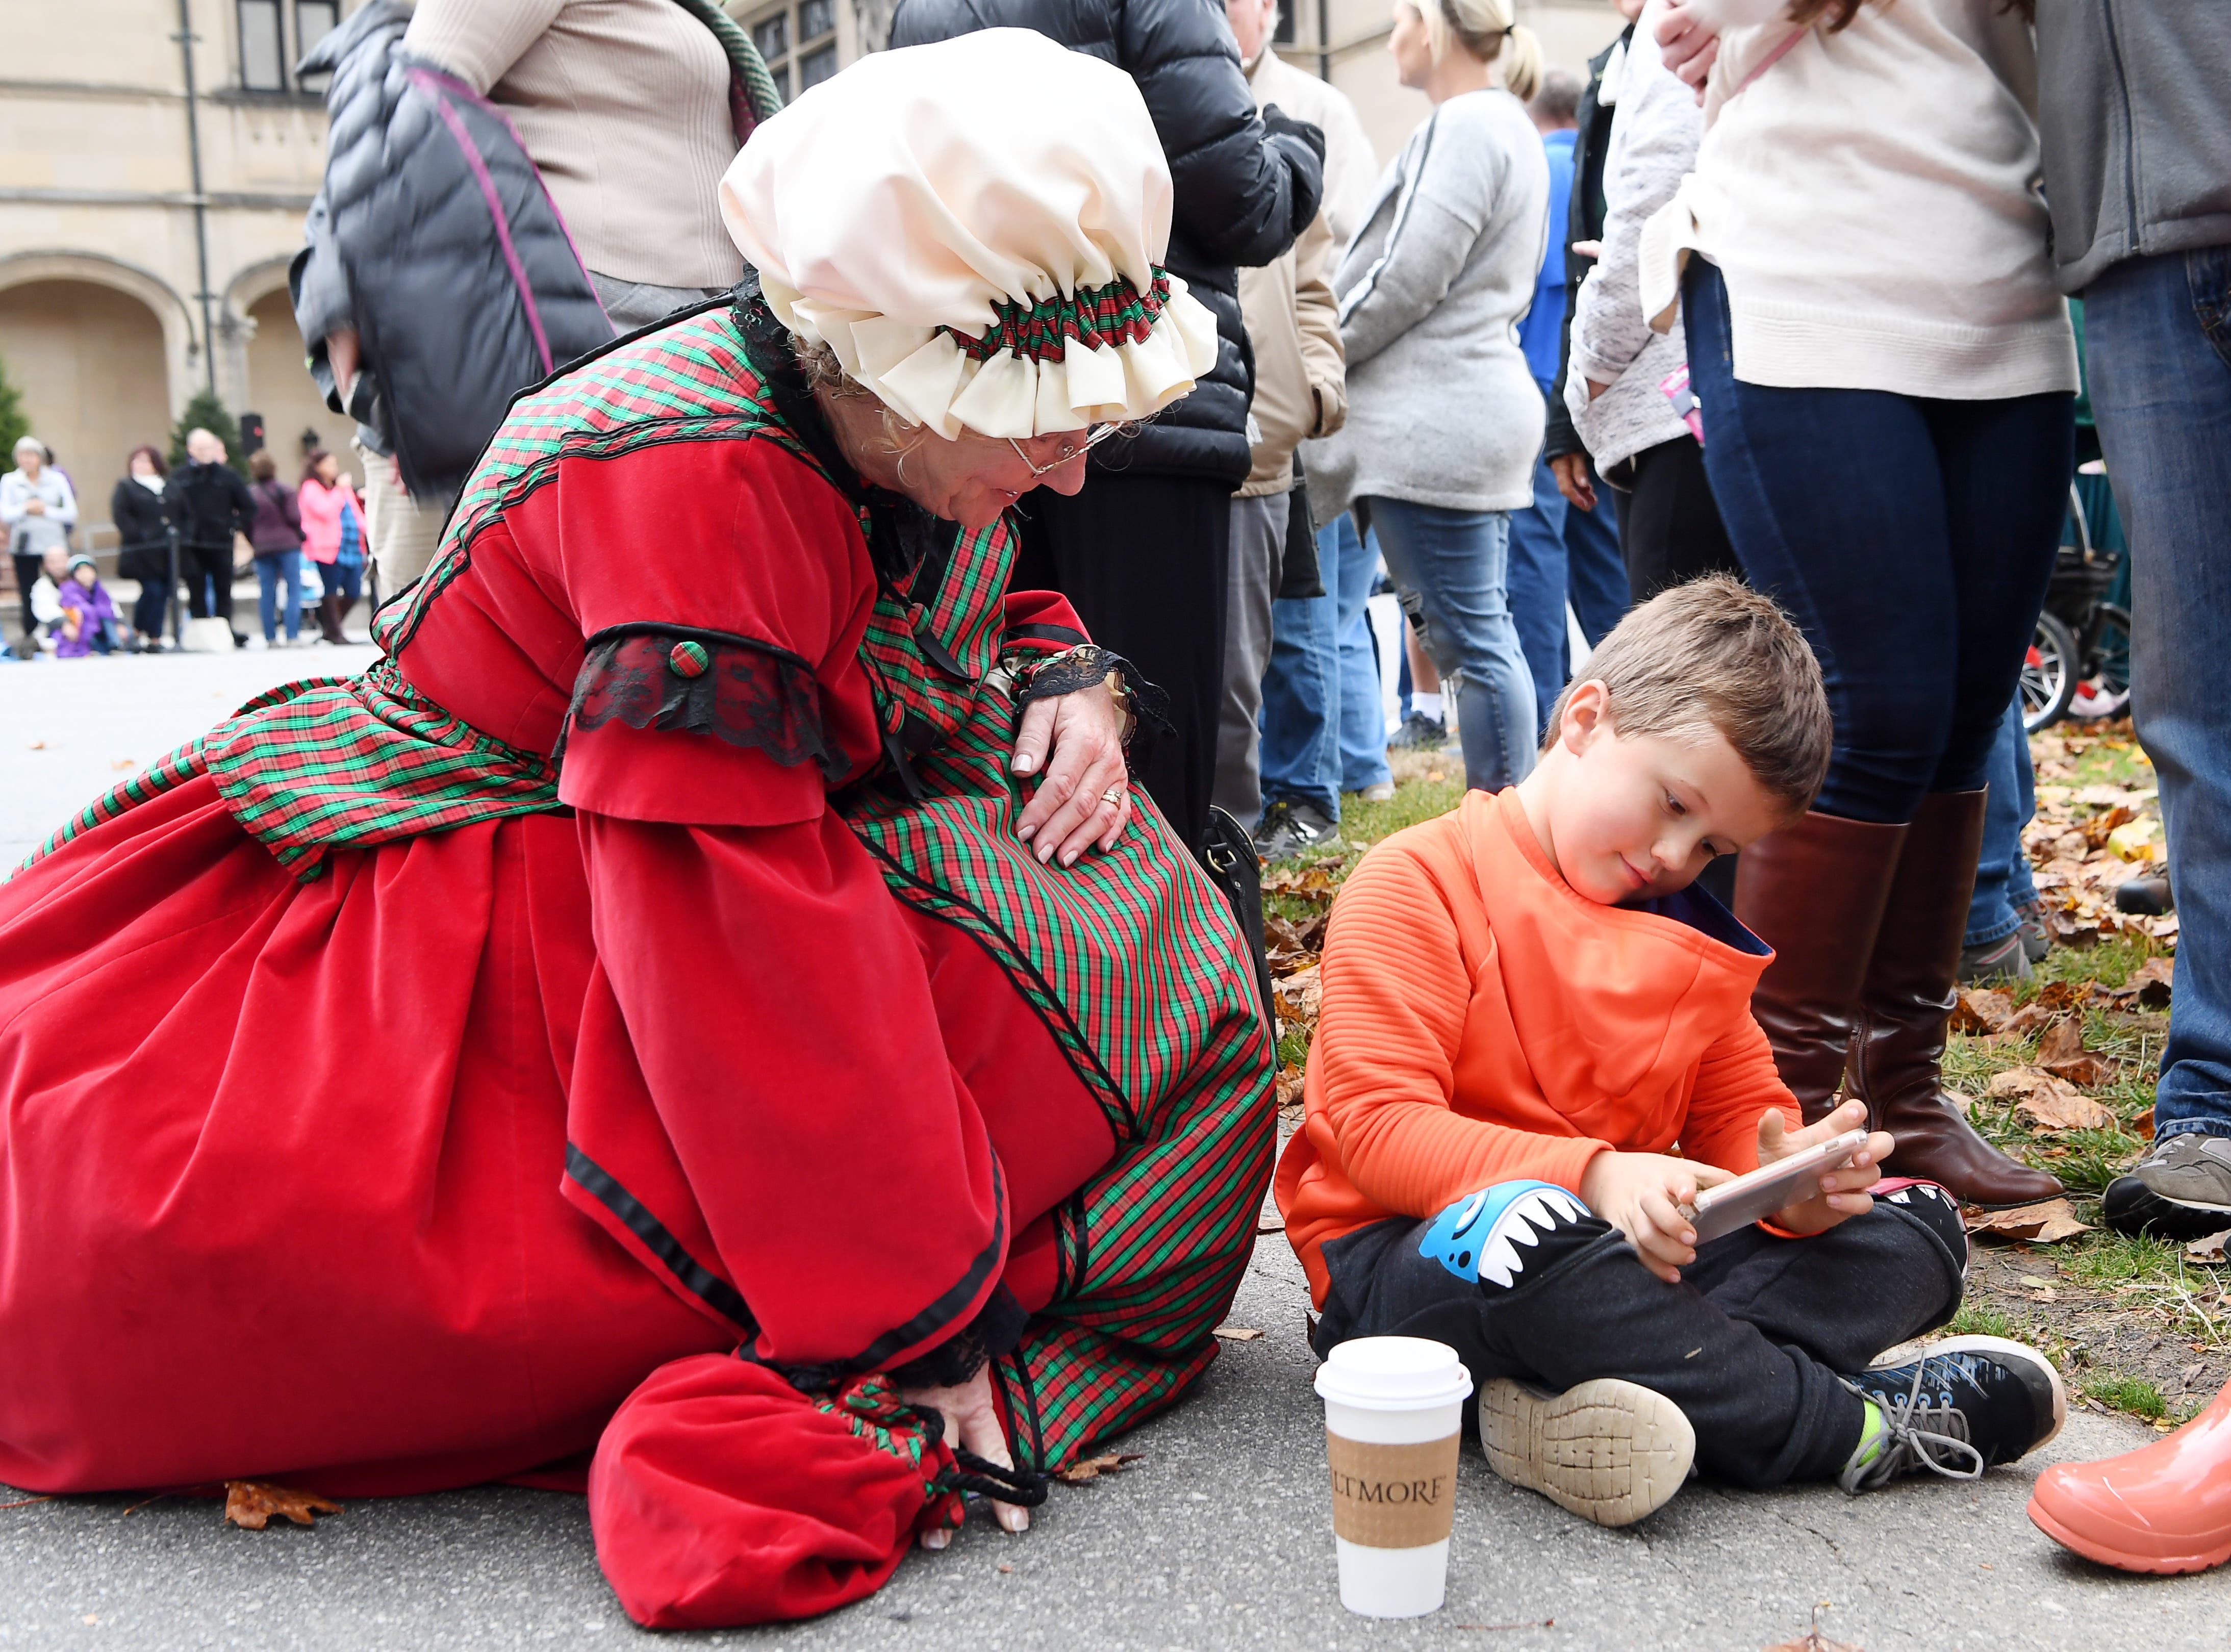 Hunter Henderson, 6, shows Mrs. Claus the game he is playing as he waits for the arrival of the Biltmore's banquet hall Christmas tree Nov. 1, 2018.